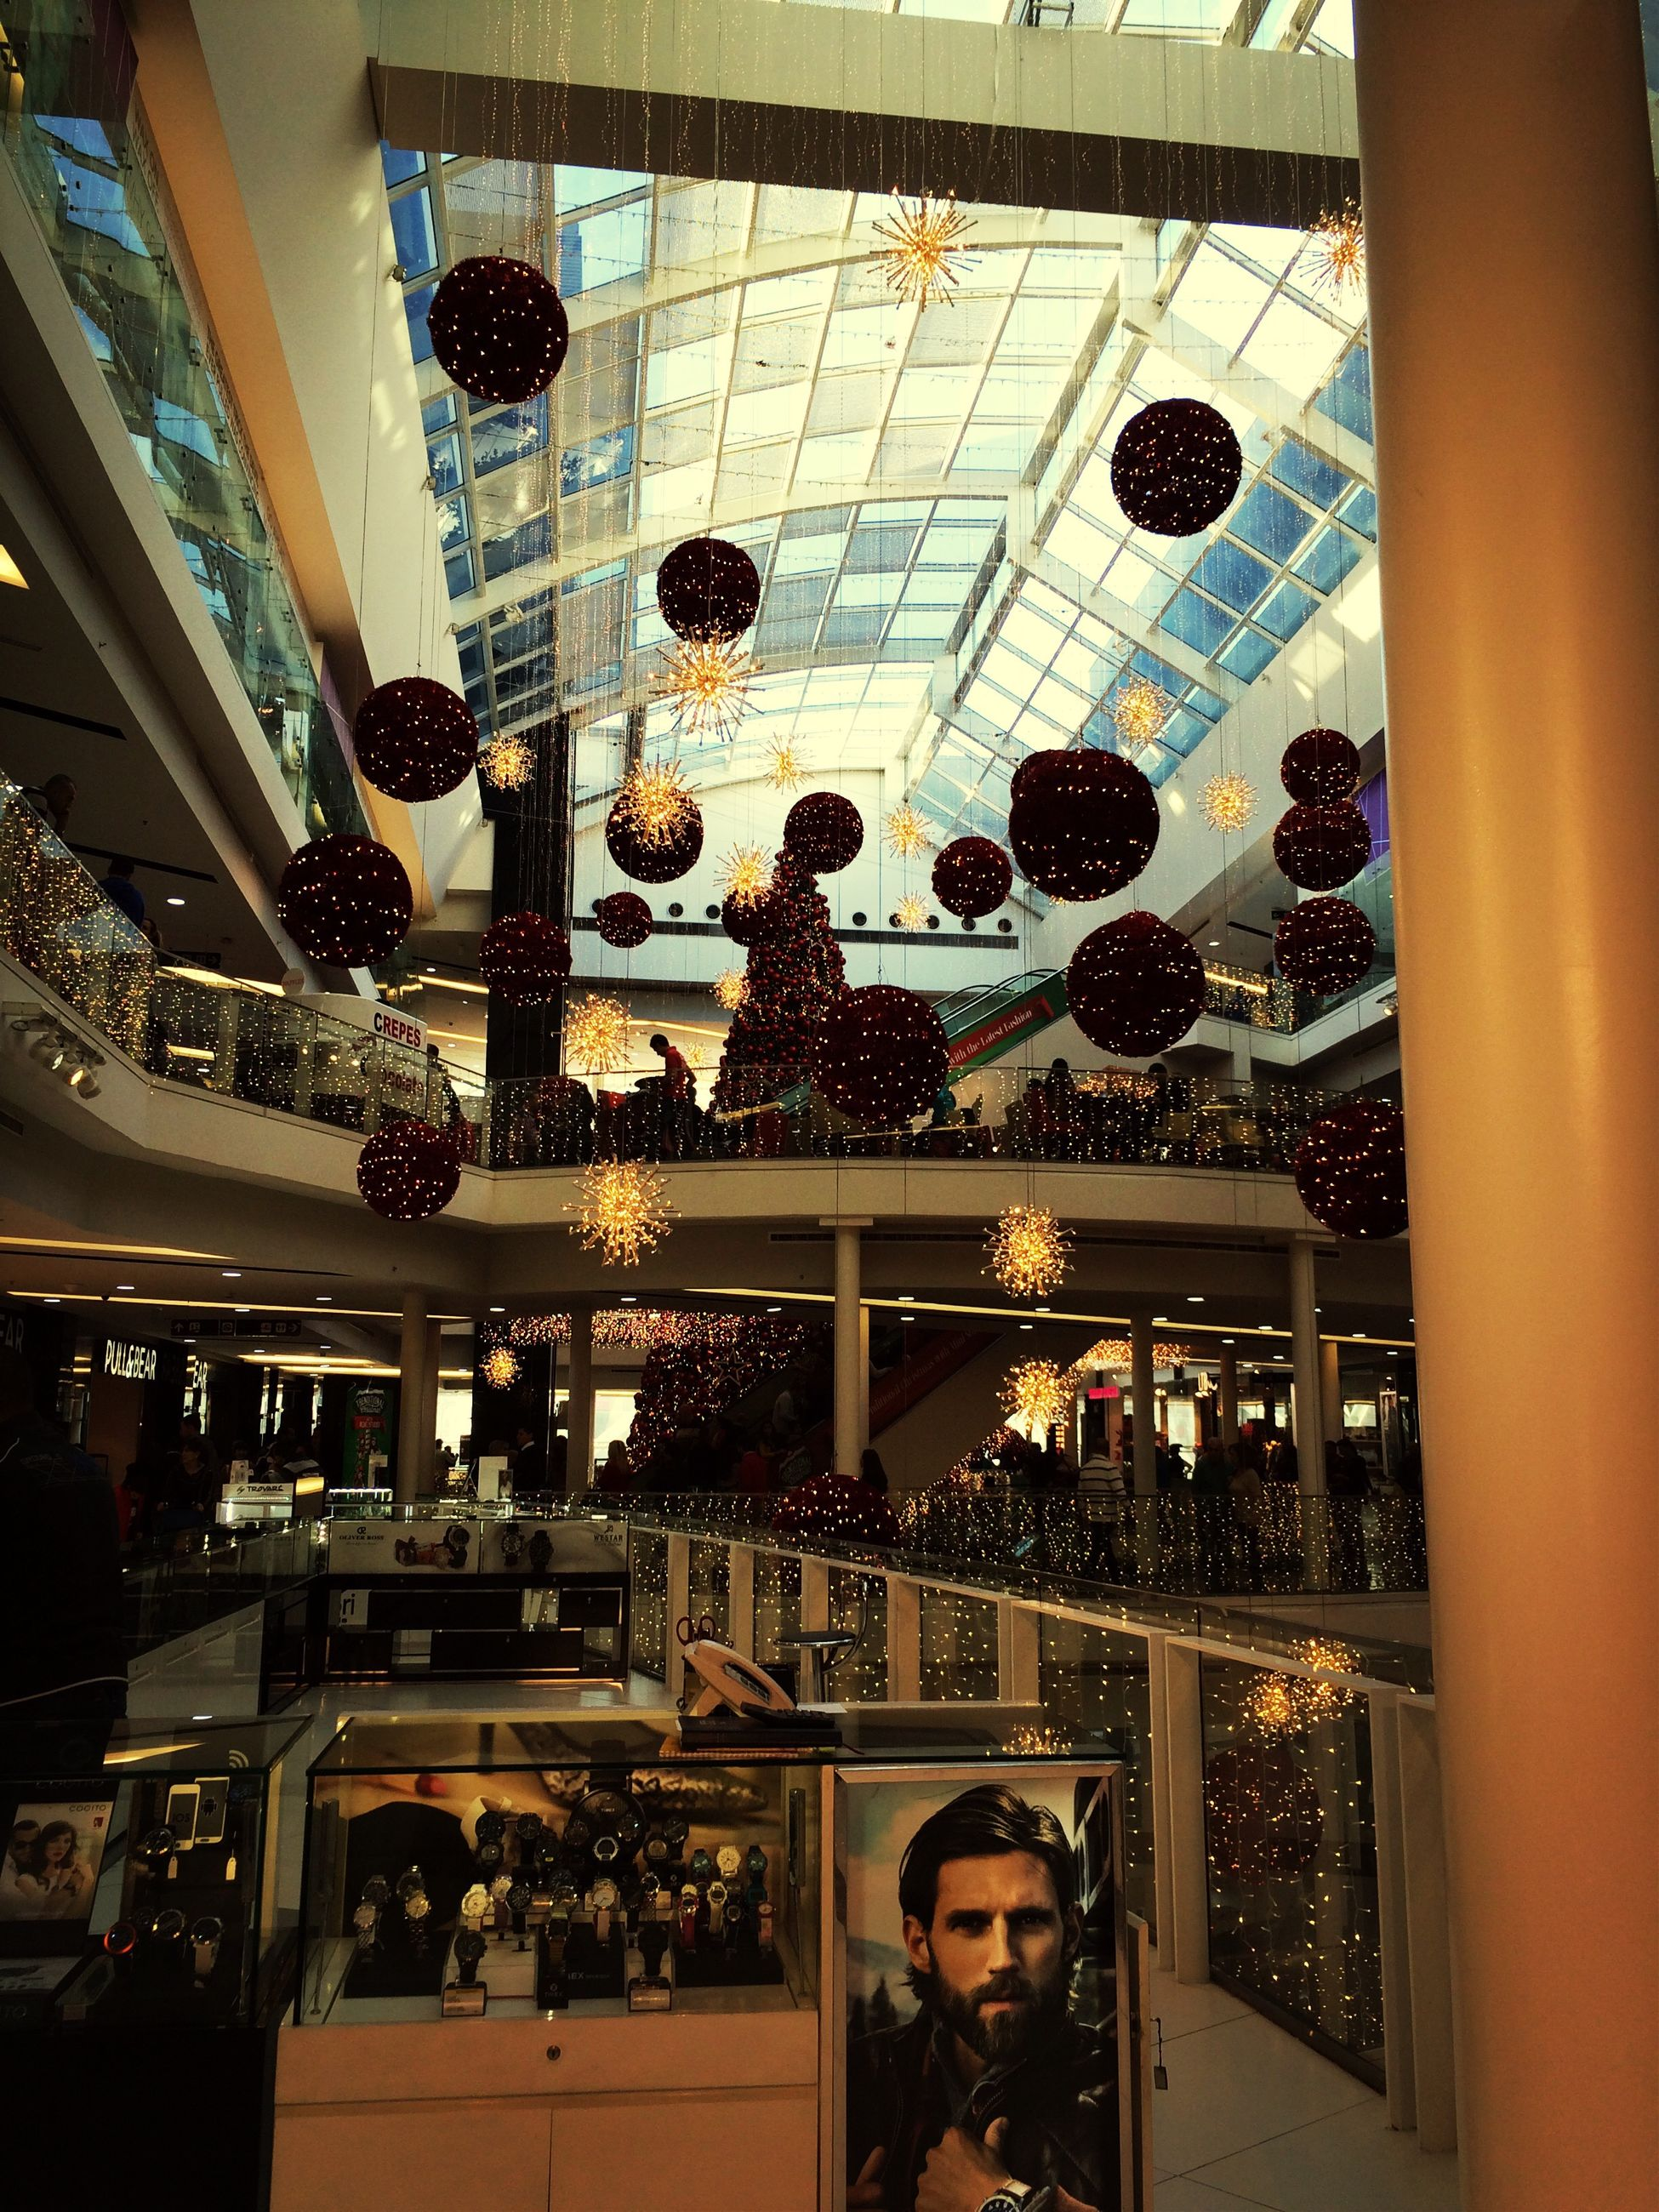 indoors, architecture, built structure, men, person, lifestyles, incidental people, leisure activity, ceiling, glass - material, large group of people, transportation, modern, shopping mall, window, city, city life, travel